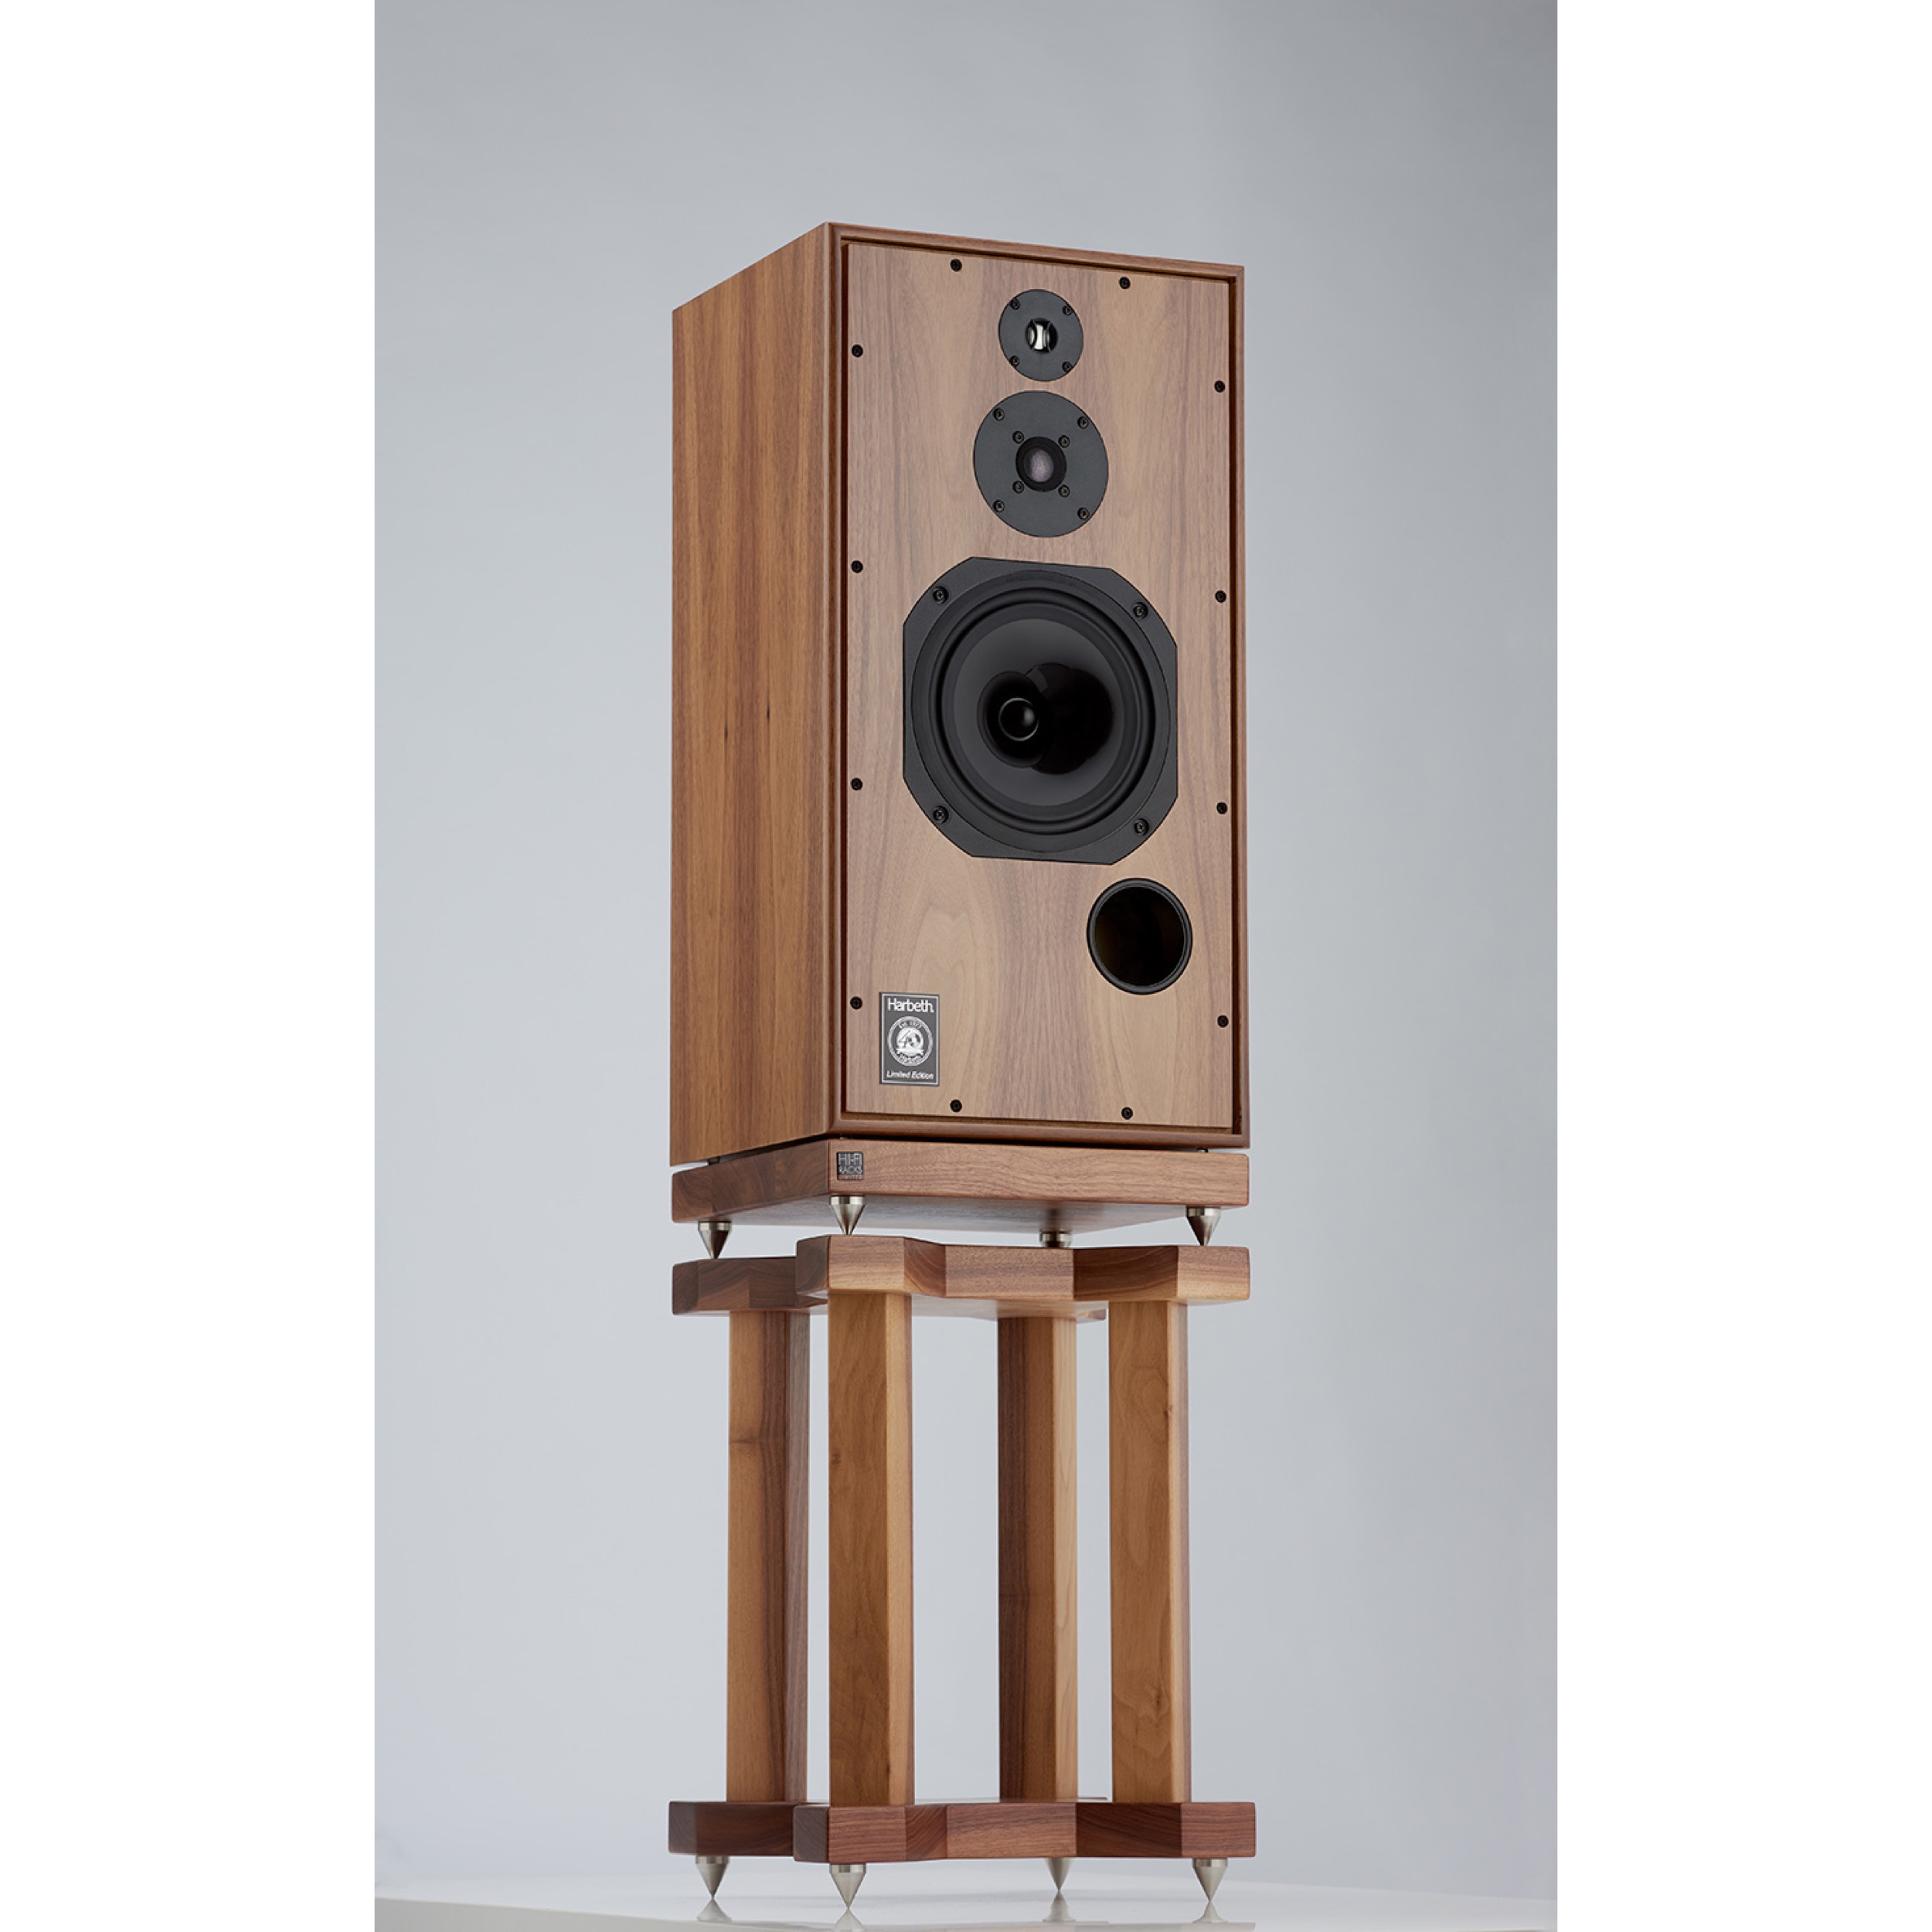 Cajas para Leben cs 600. Harbeth_shl5plus_40th_anniversary_walnut_veneer_hifi_news_jan_2017_stands